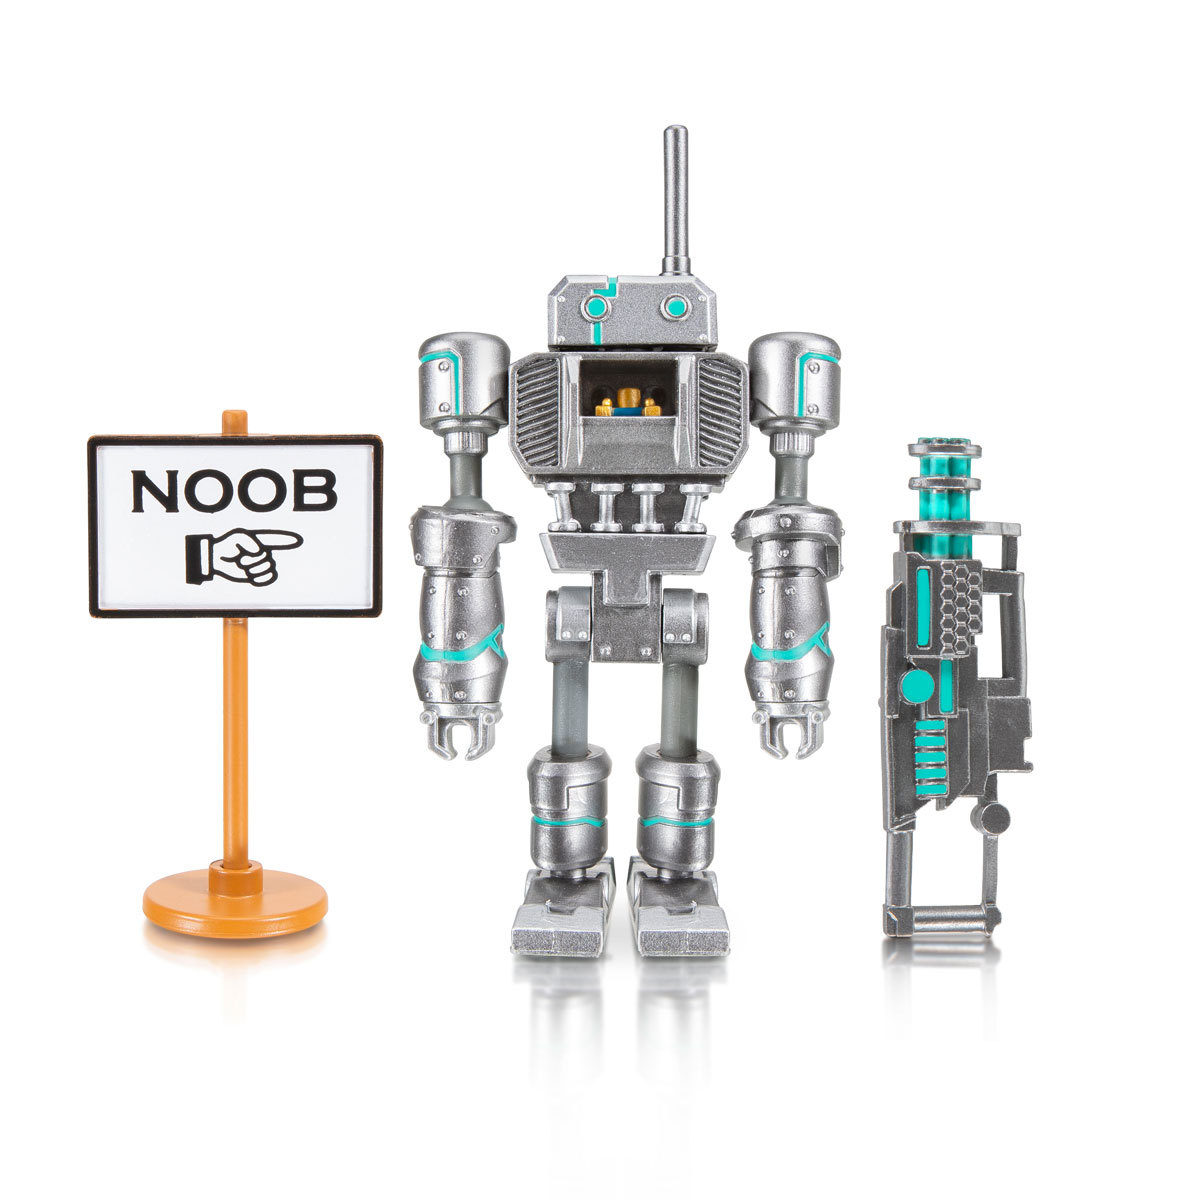 Lego Robot Roblox Noob Roblox Imagination Figure Noob Attack Mech Mobility The Entertainer